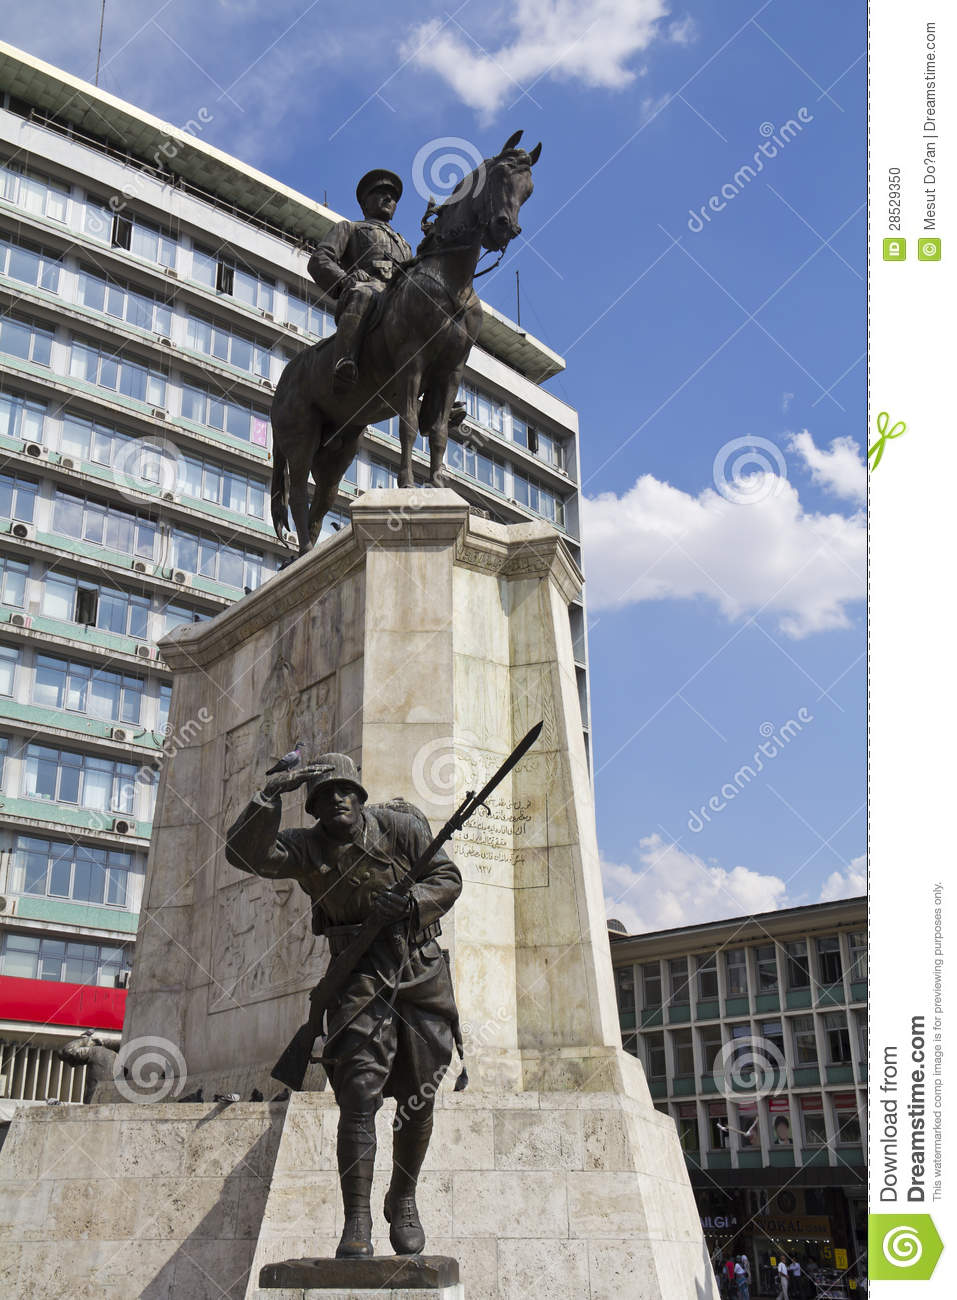 Statue Of Ataturk On Horse Stock Photo.